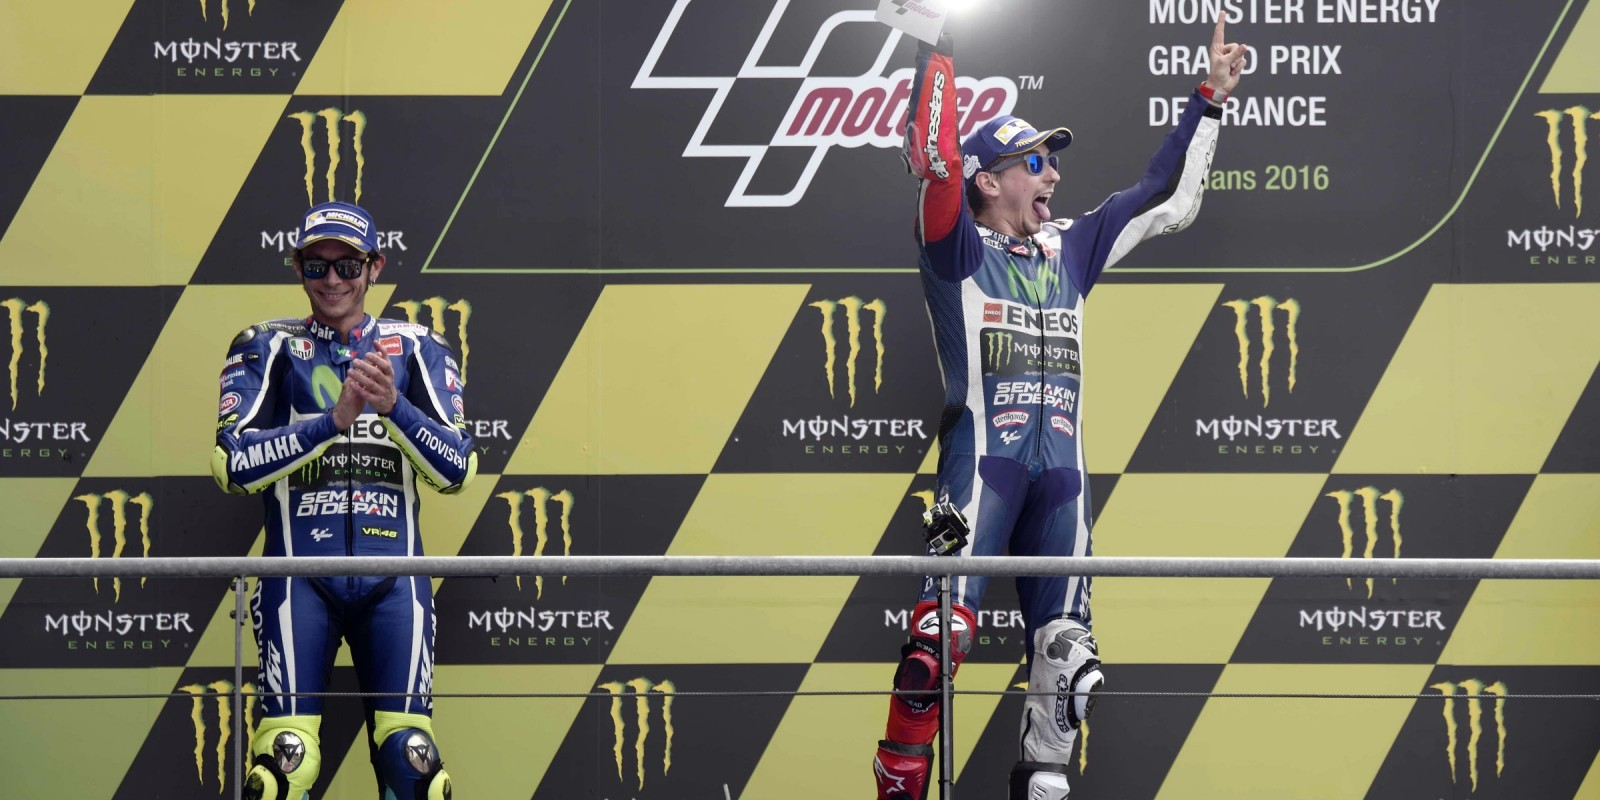 2016 Monster Energy MotoGP Le Mans, France images from race day